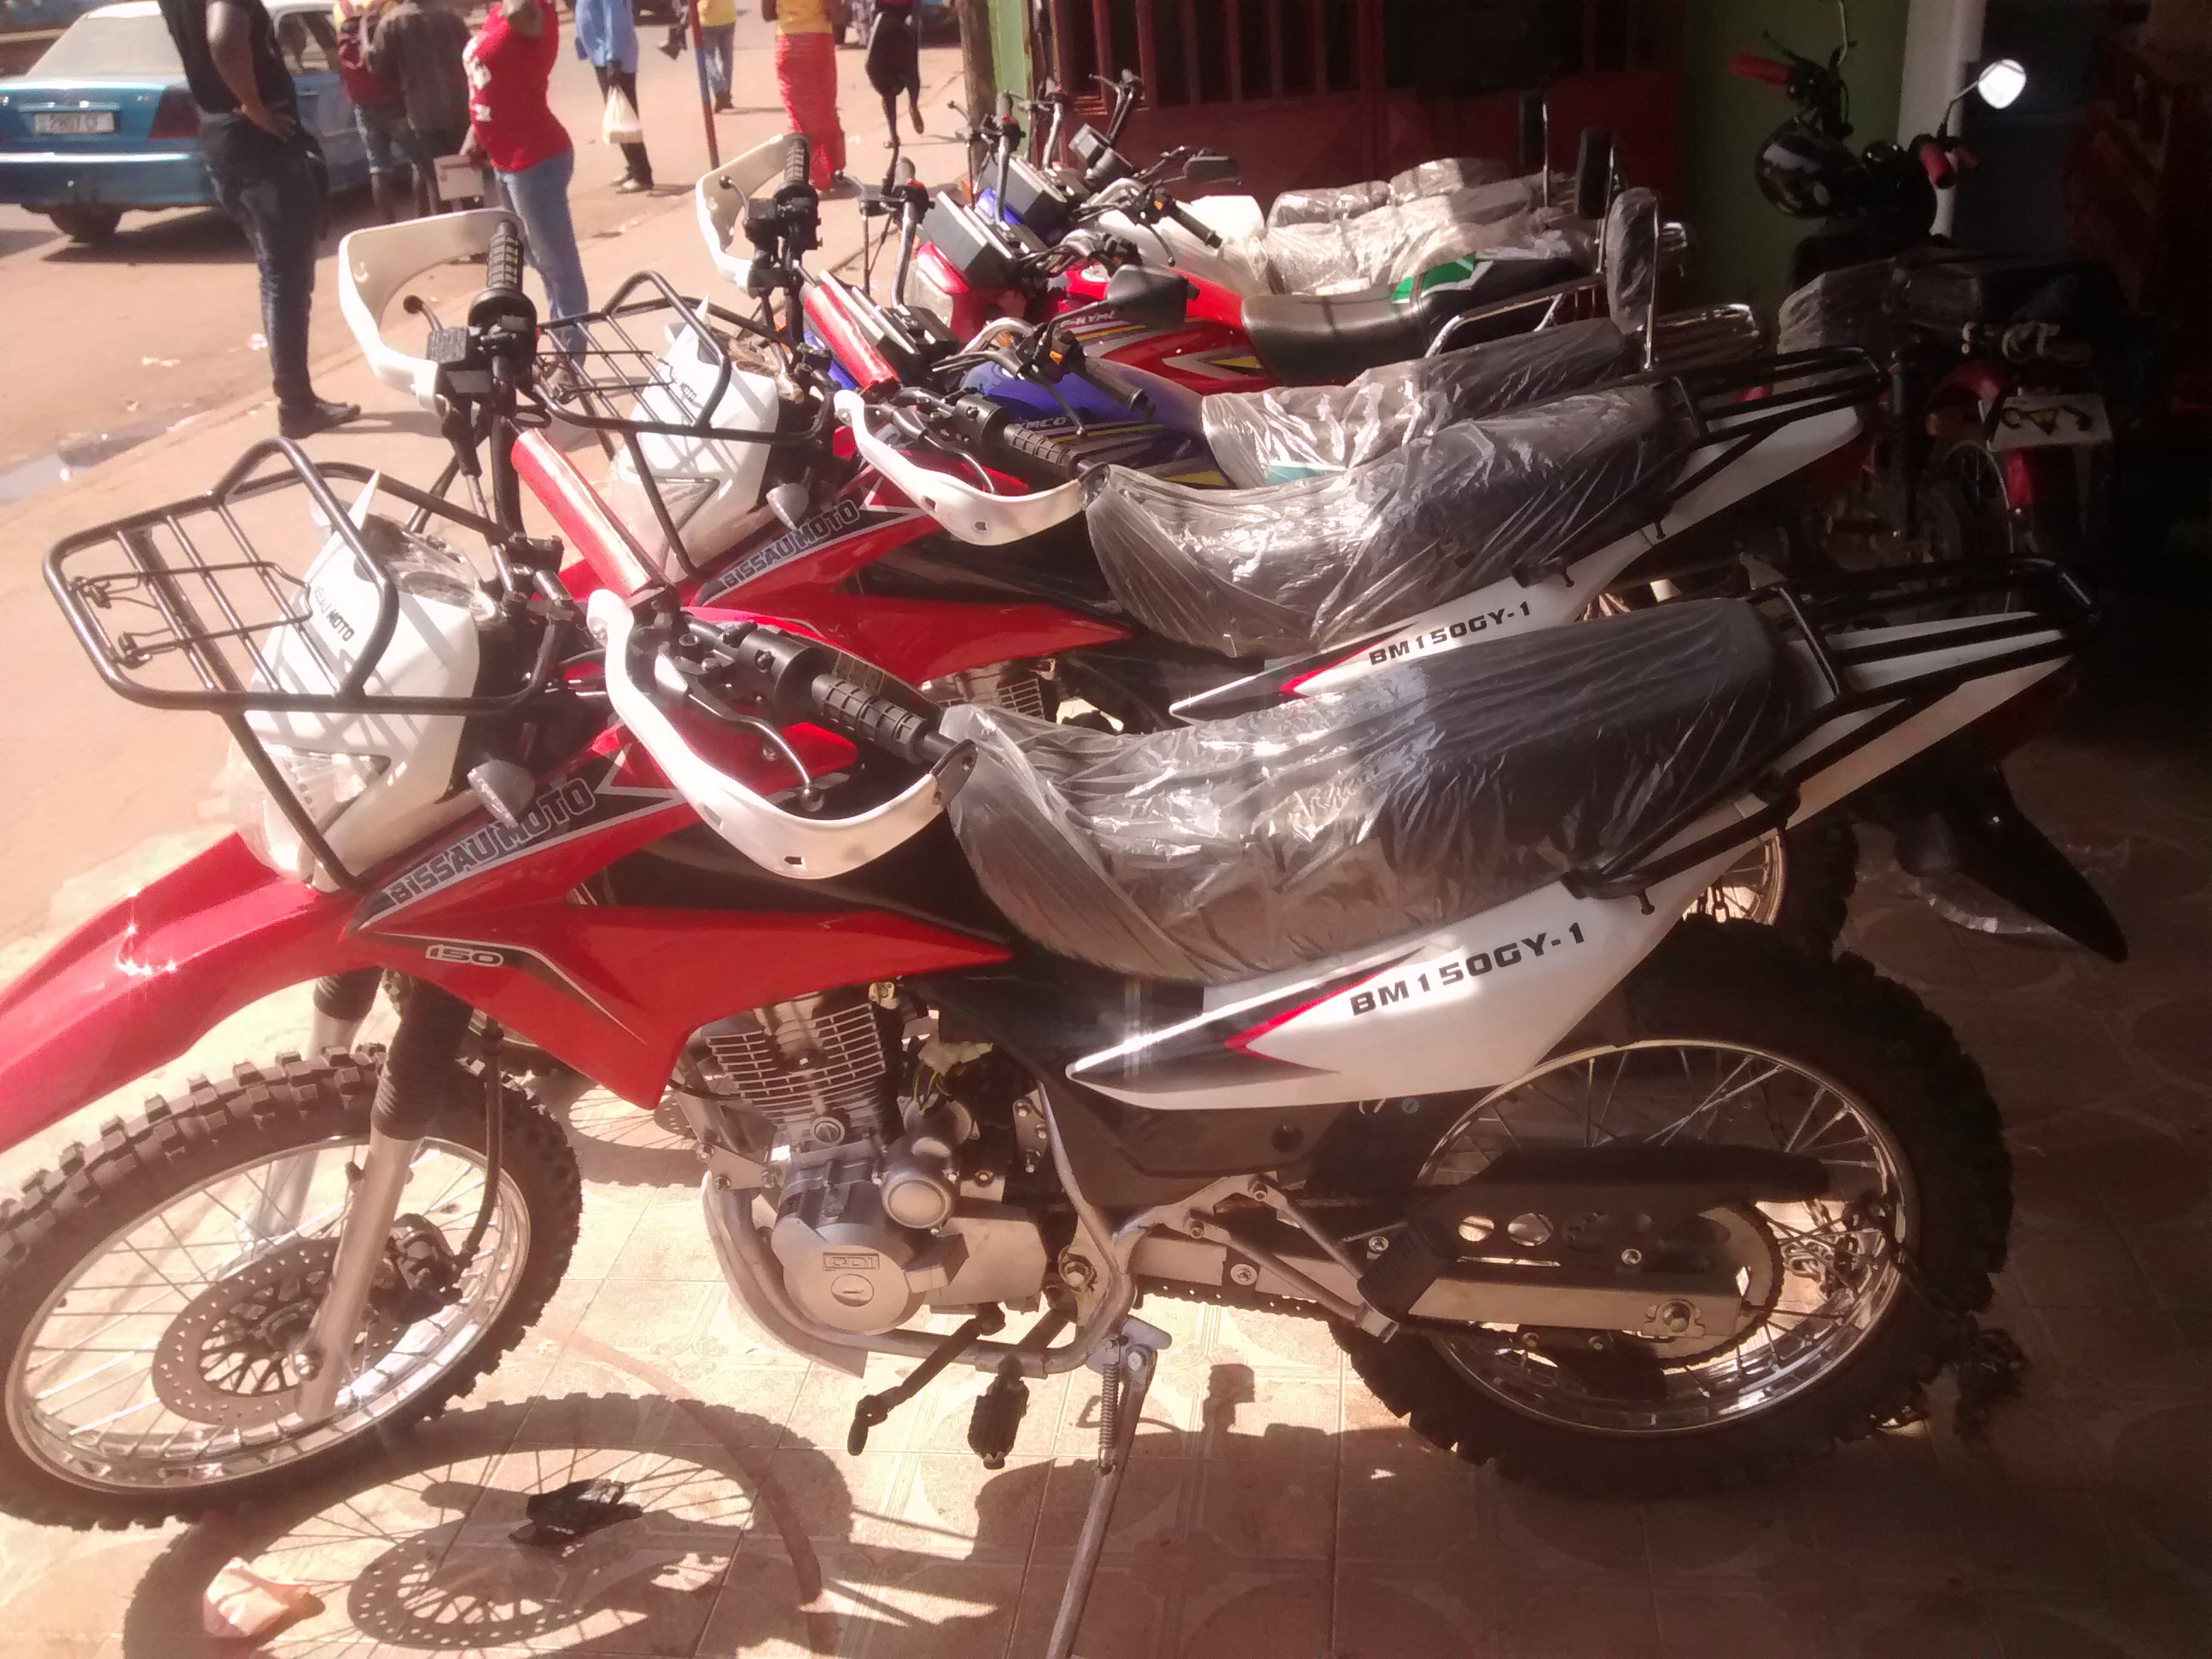 Brand new motorcycles for sale in Bissau, Guinea-Bissau.